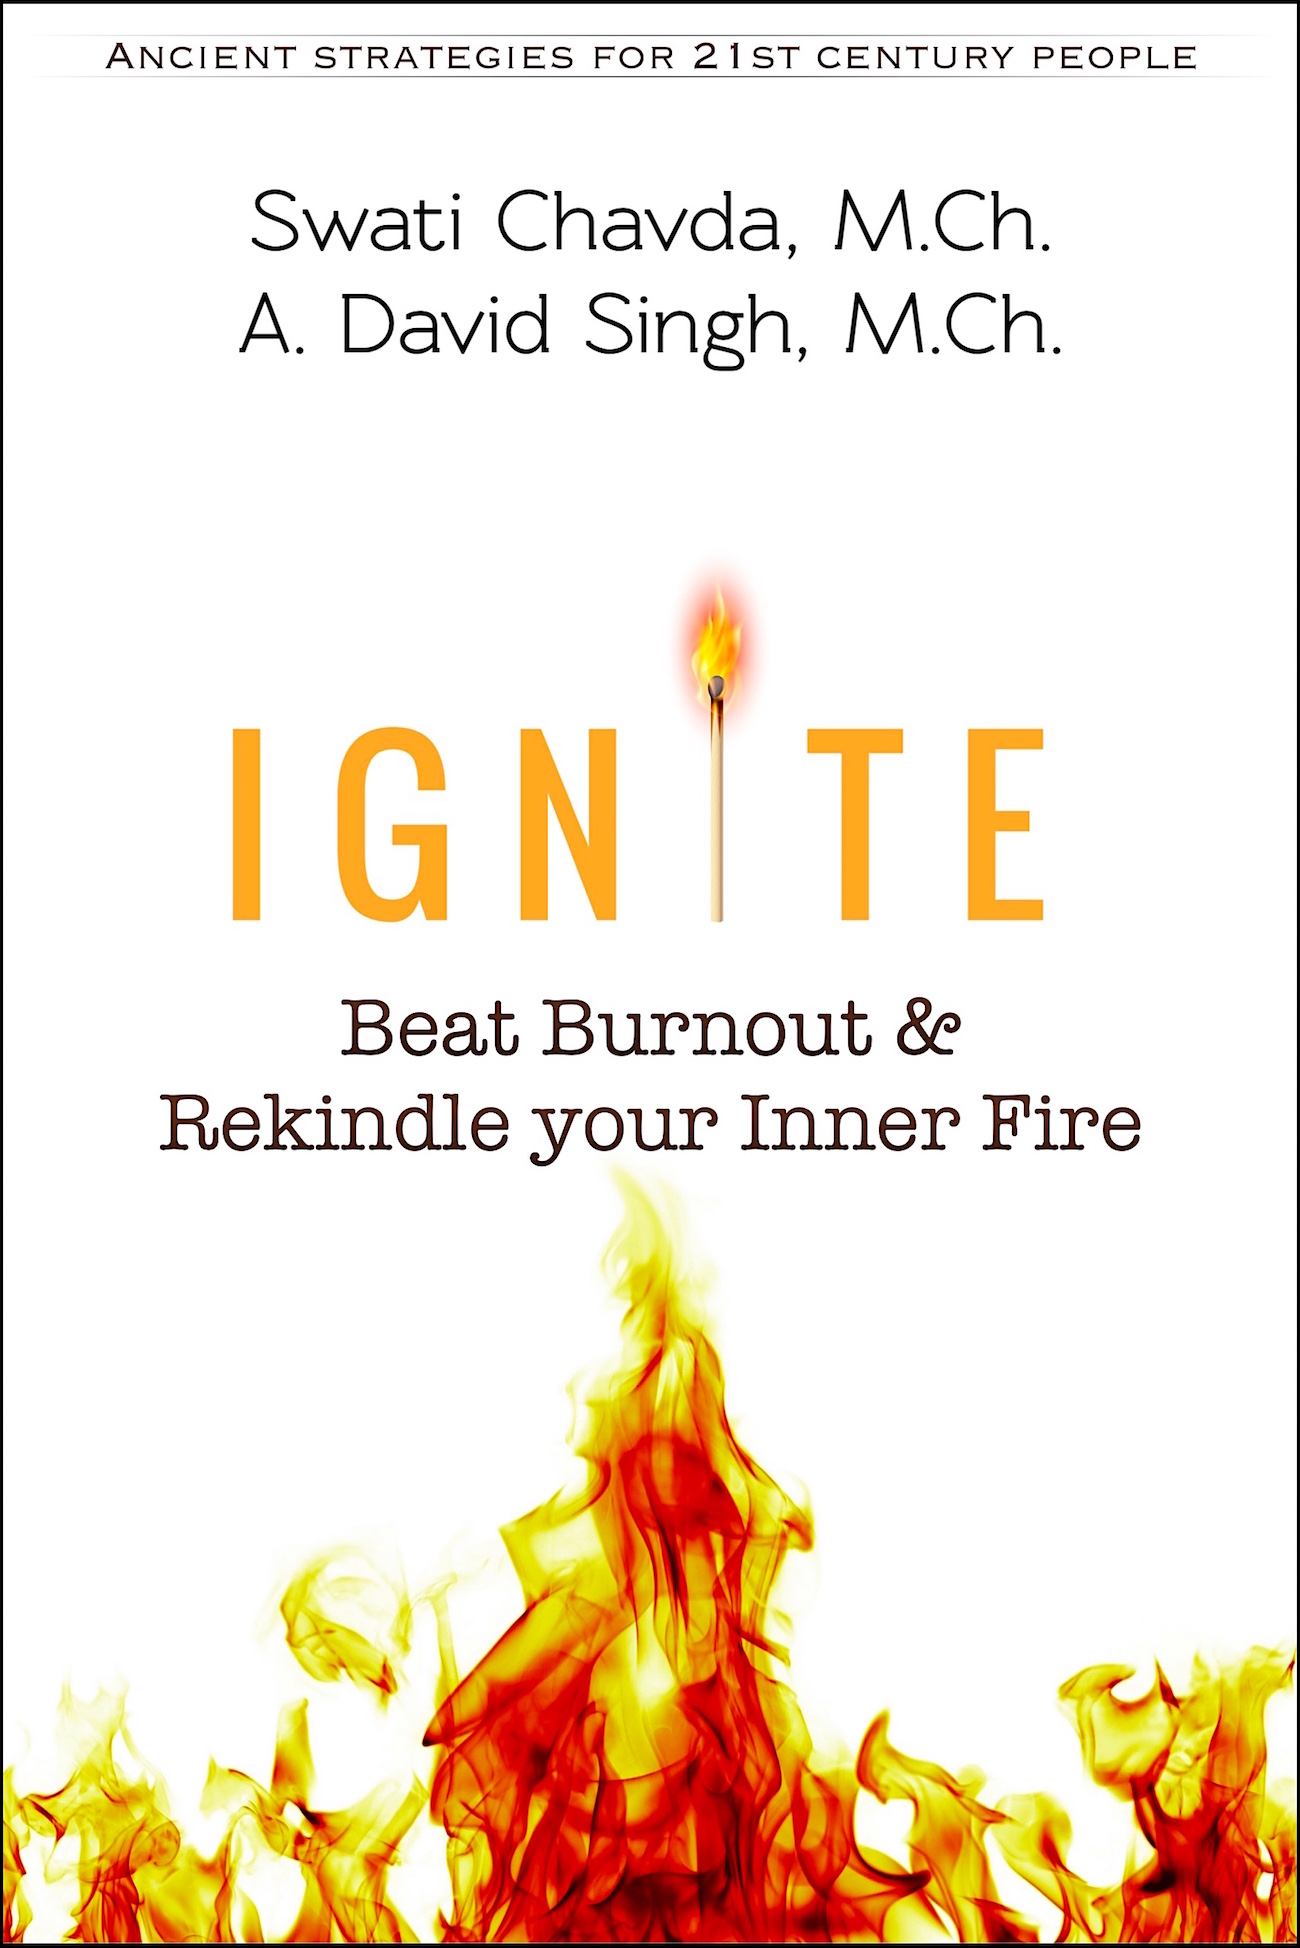 Ignite-A. David Singh